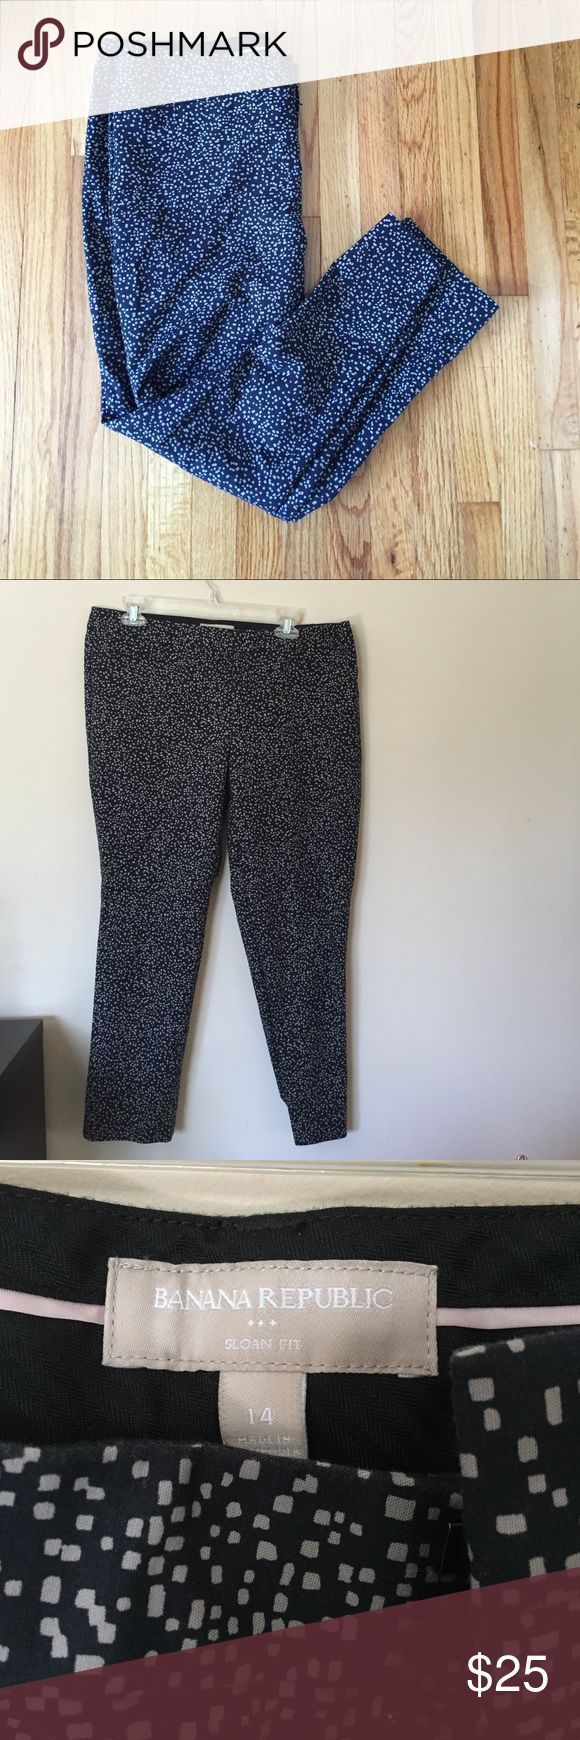 Banana Republic Pants Banana Republic Sloan fit pants. Add to a bundle for a discount. No trades or holds. Banana Republic Pants